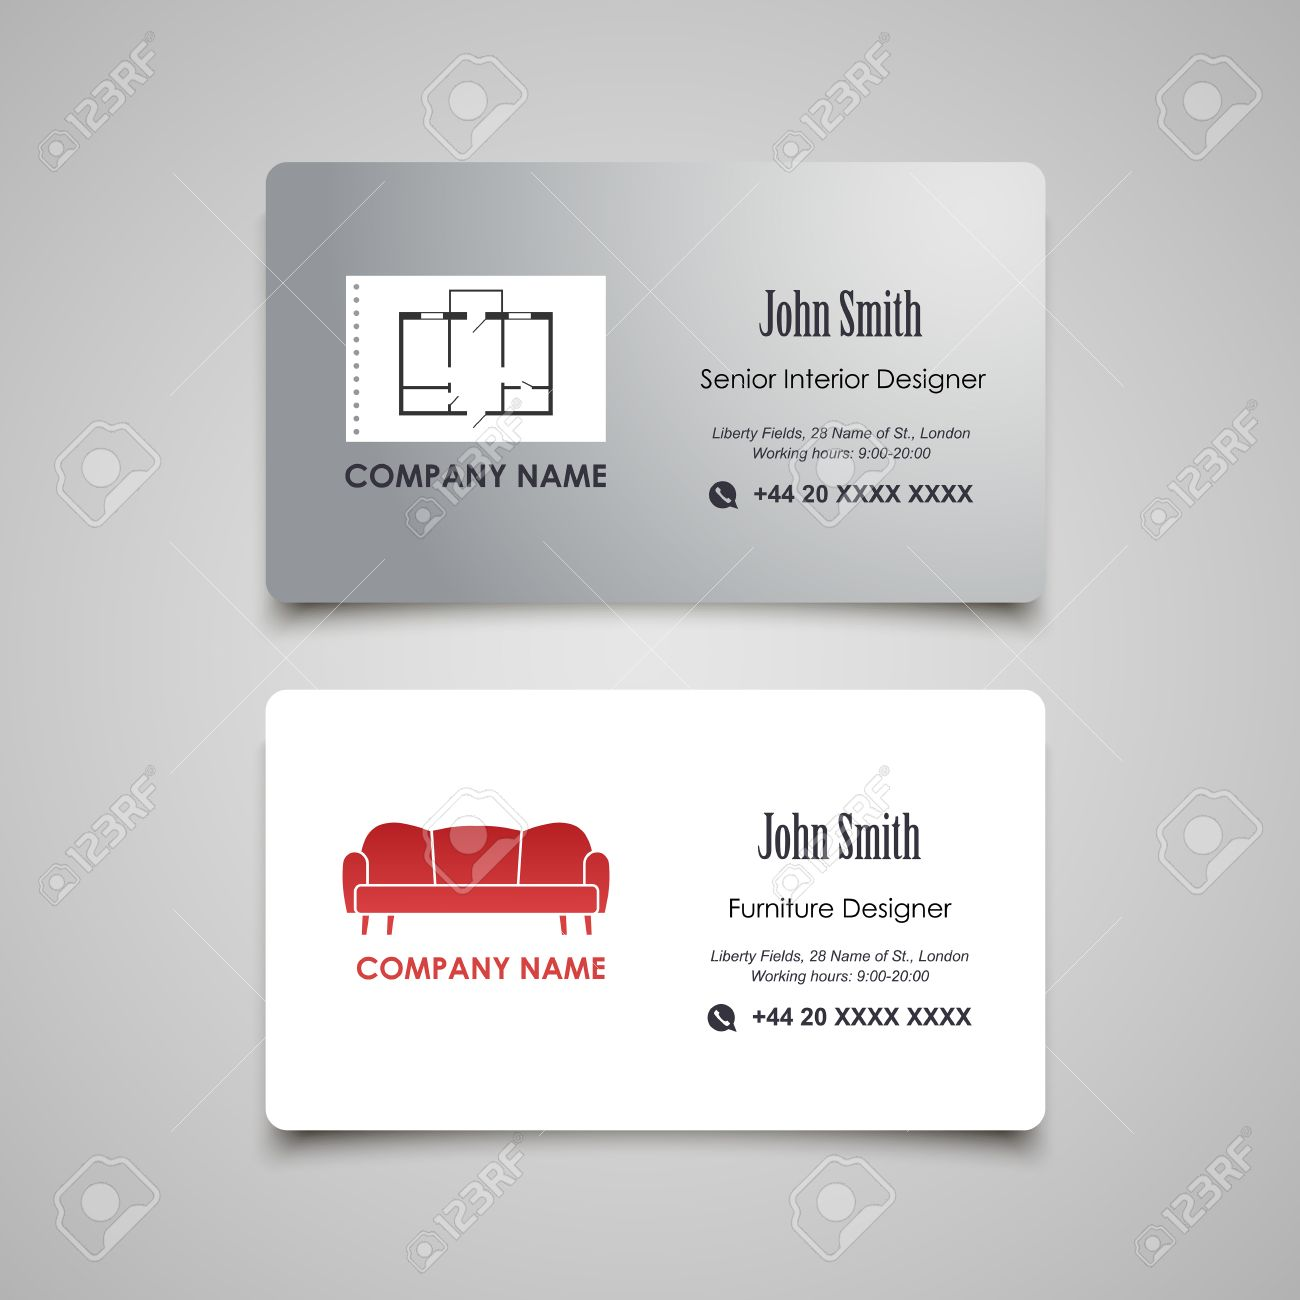 Interior And Furniture Designer Vector Business Card Template ...